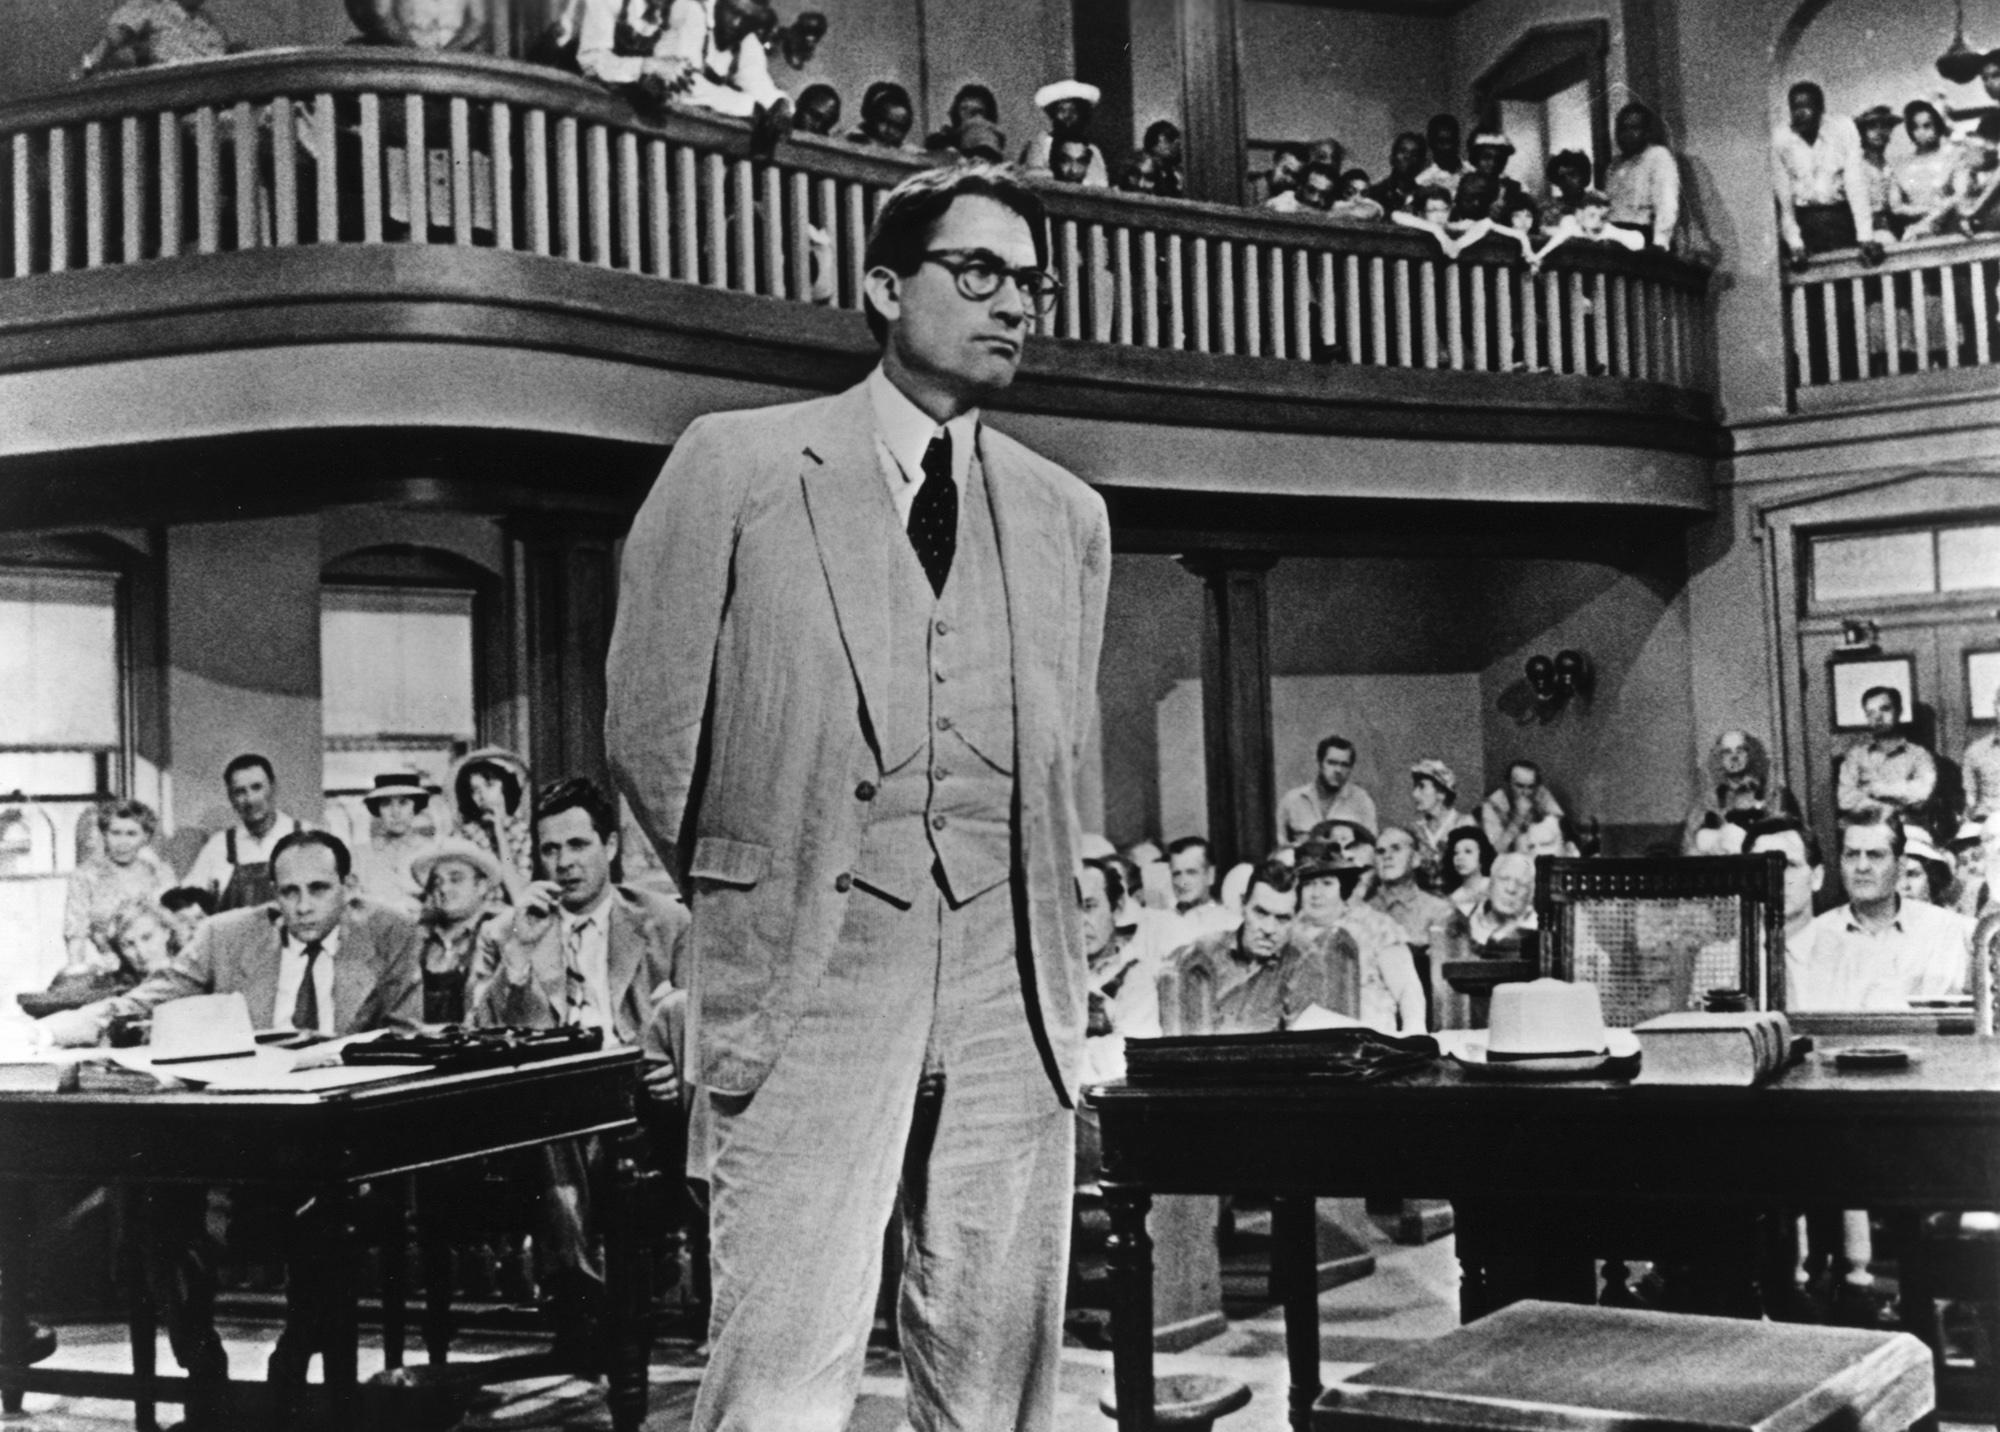 to kill a mockingbird archives the paris review the paris review good atticus bad atticus